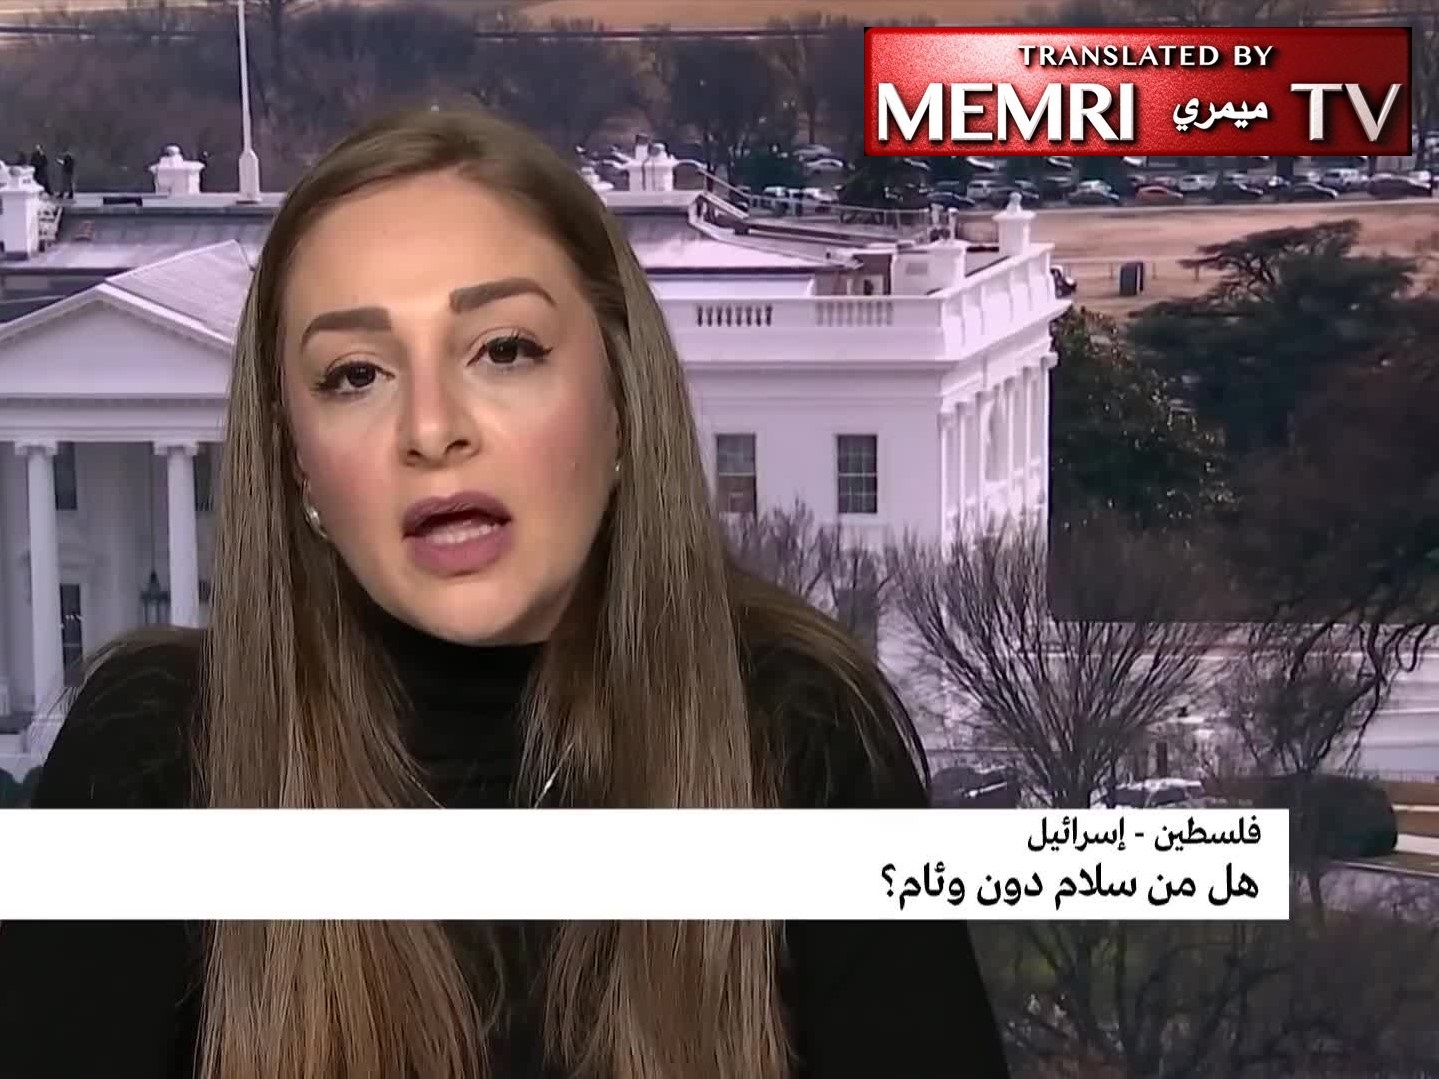 D.C.-Based Political Analyst Ruwan Al-Rejoleh: The Palestinian Issue Has Come to An End; It Is Now an Economic Issue Rather Than a Political One